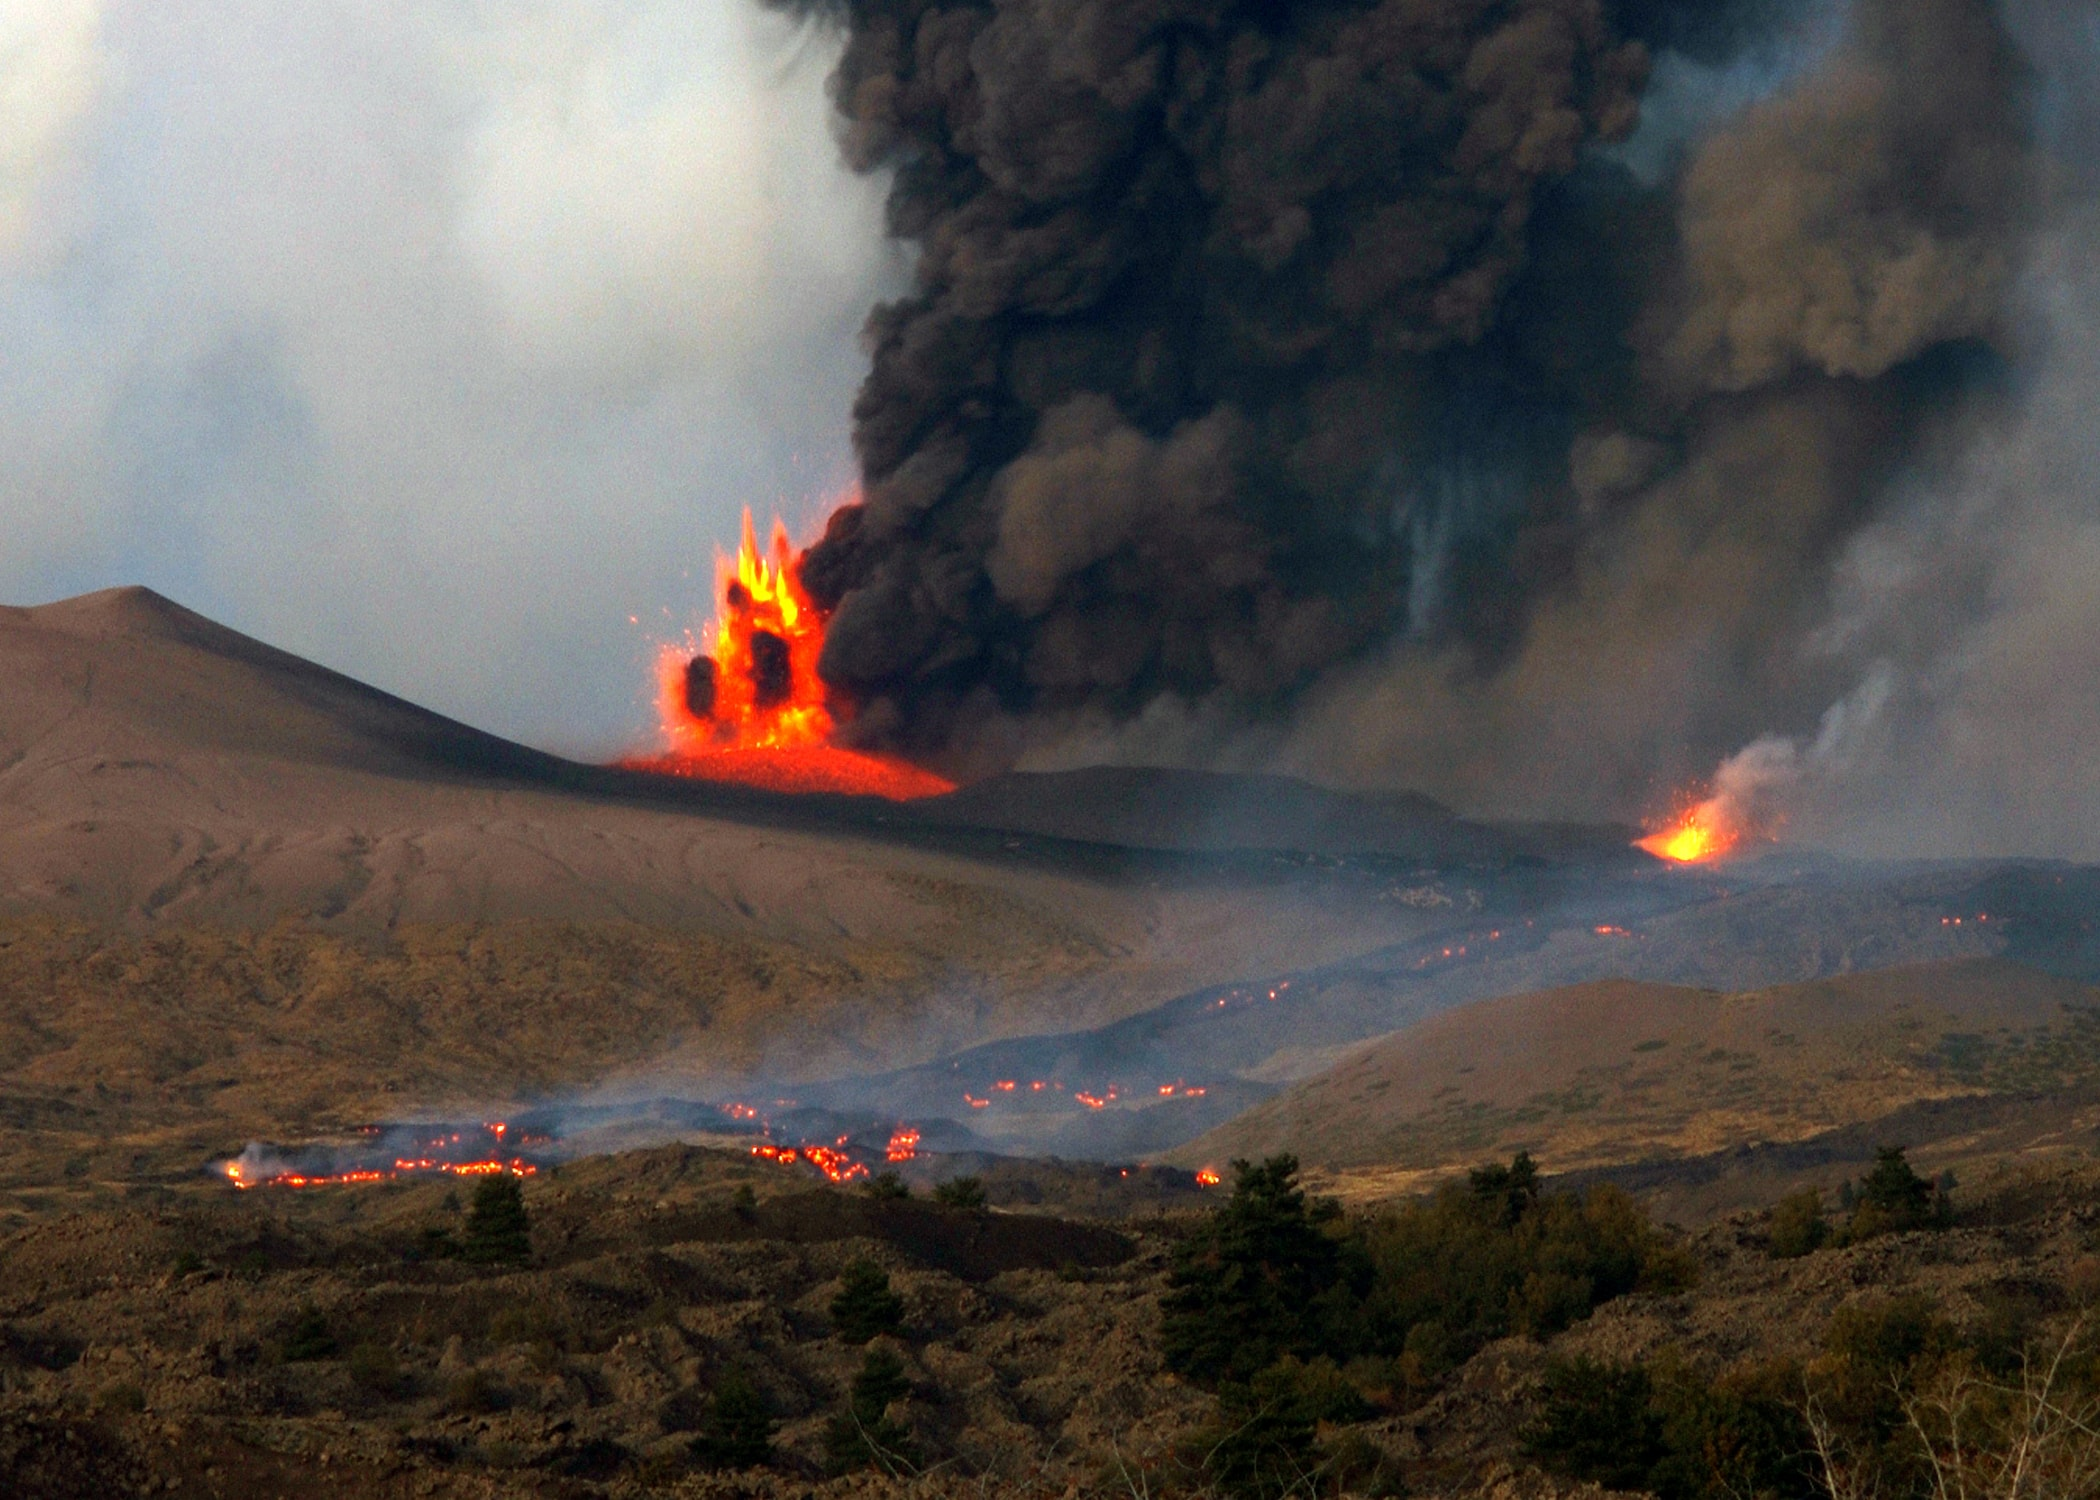 The World's Five Deadliest Volcanoes and Why They're So Dangerous